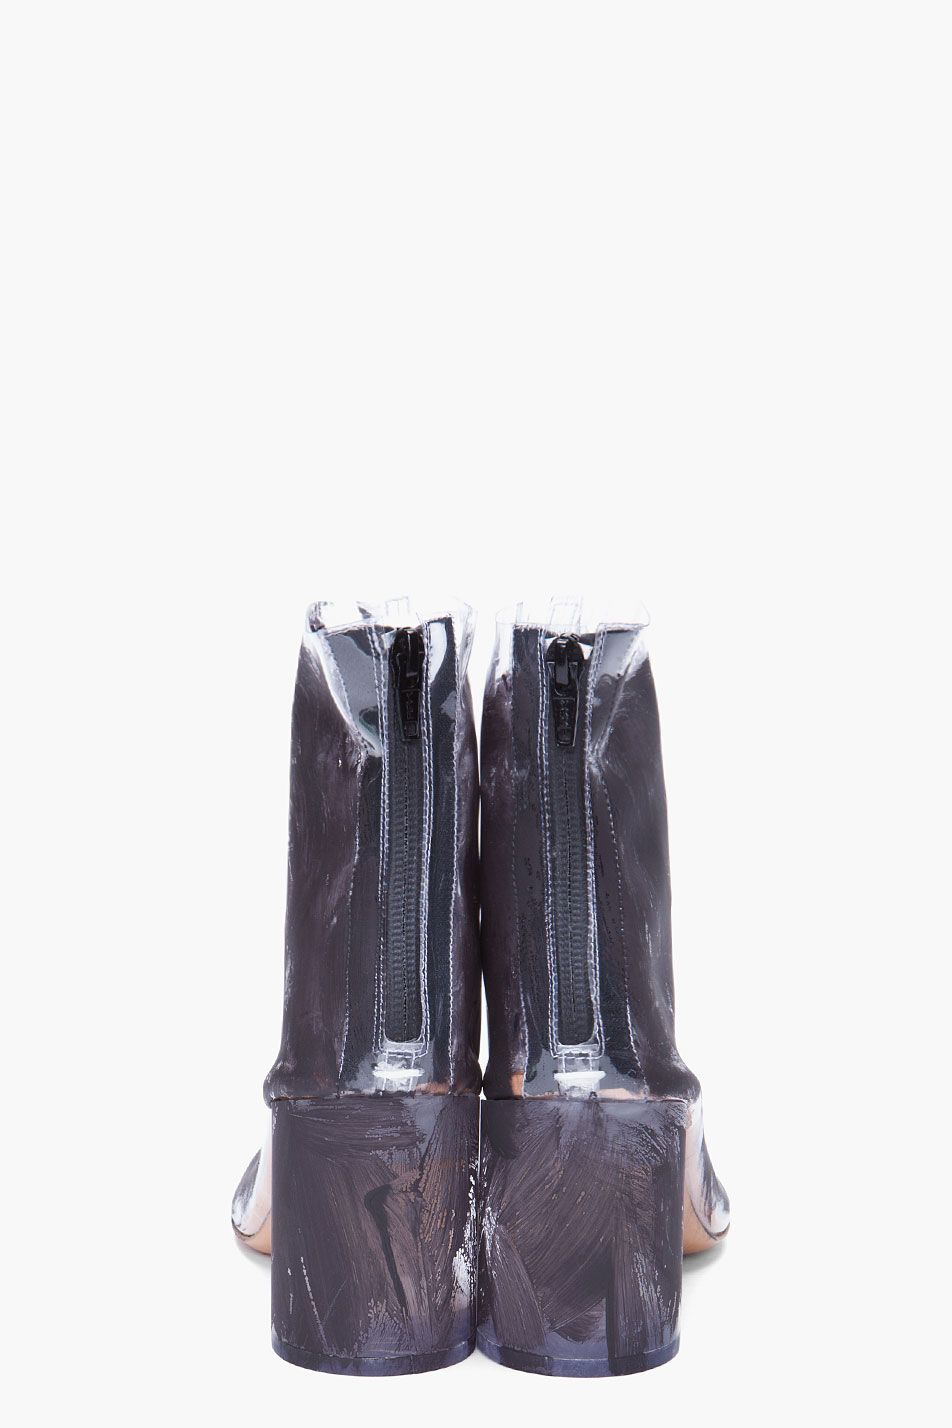 MAISON MARTIN MARGIELA Painted Transparent Boots